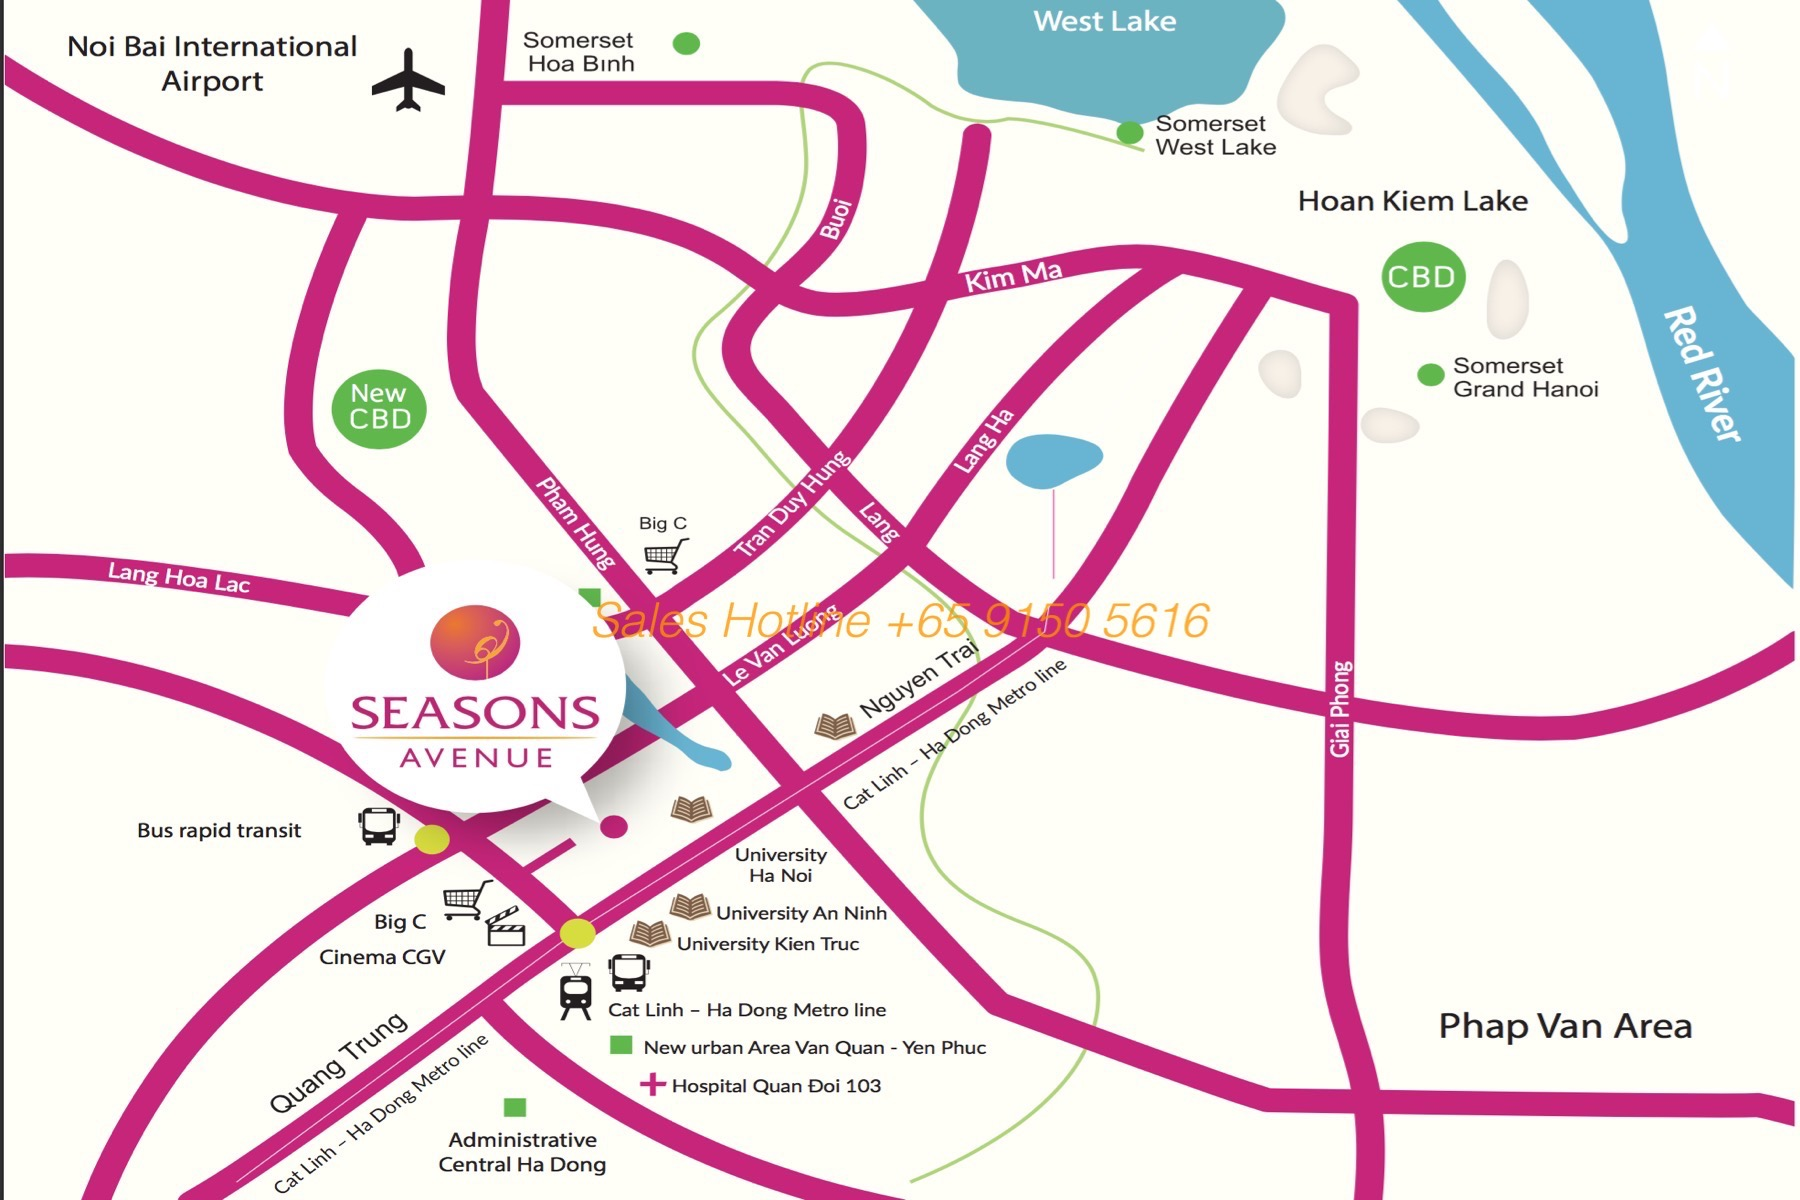 Seasons Avenue Hanoi CapitaLand Location Map